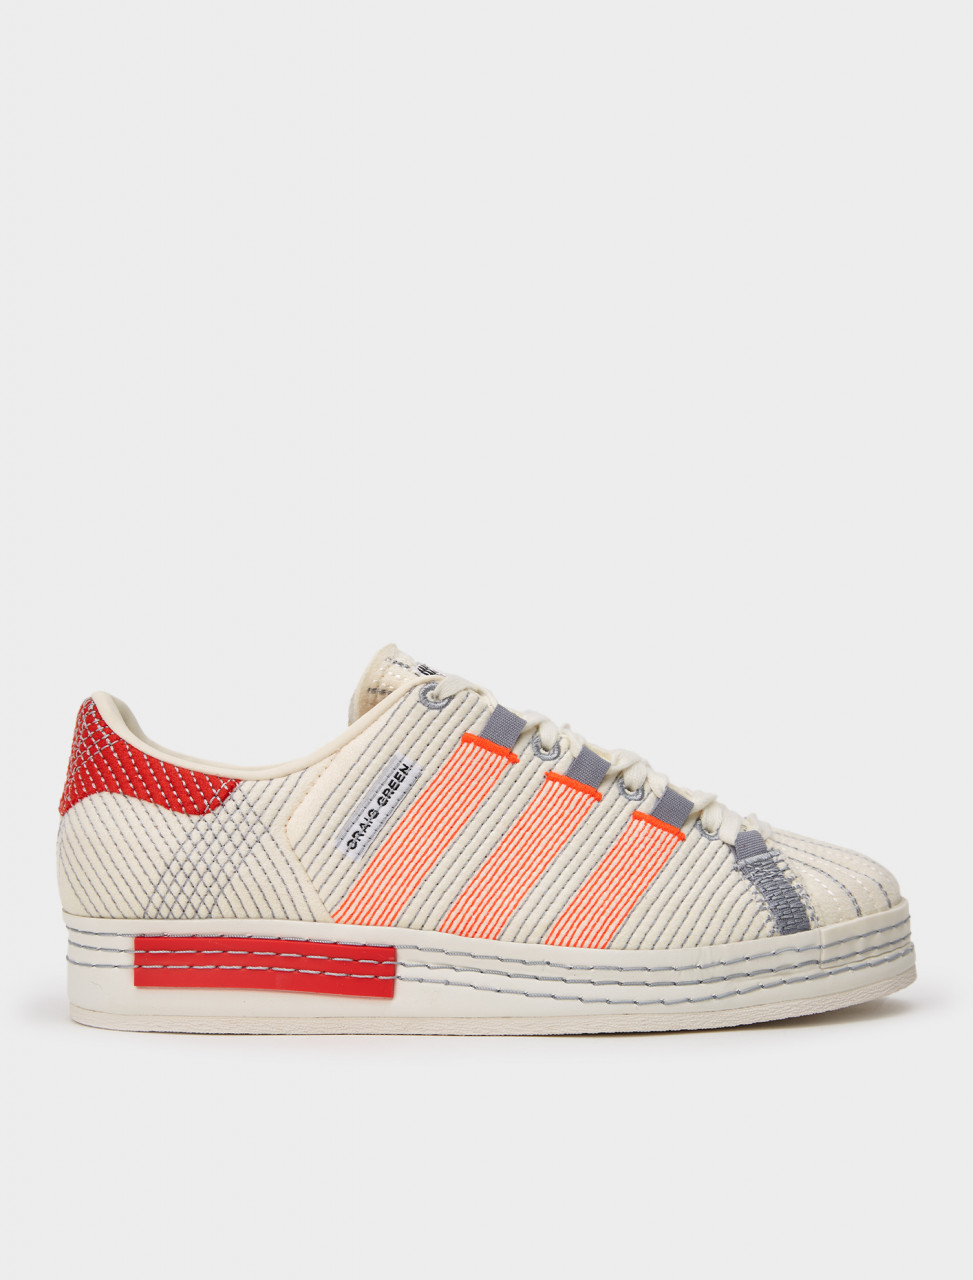 105-FY5711 ADIDAS CRAIG GREEN SUPERSTAR OFF WHITE BRIGHT RED GREY